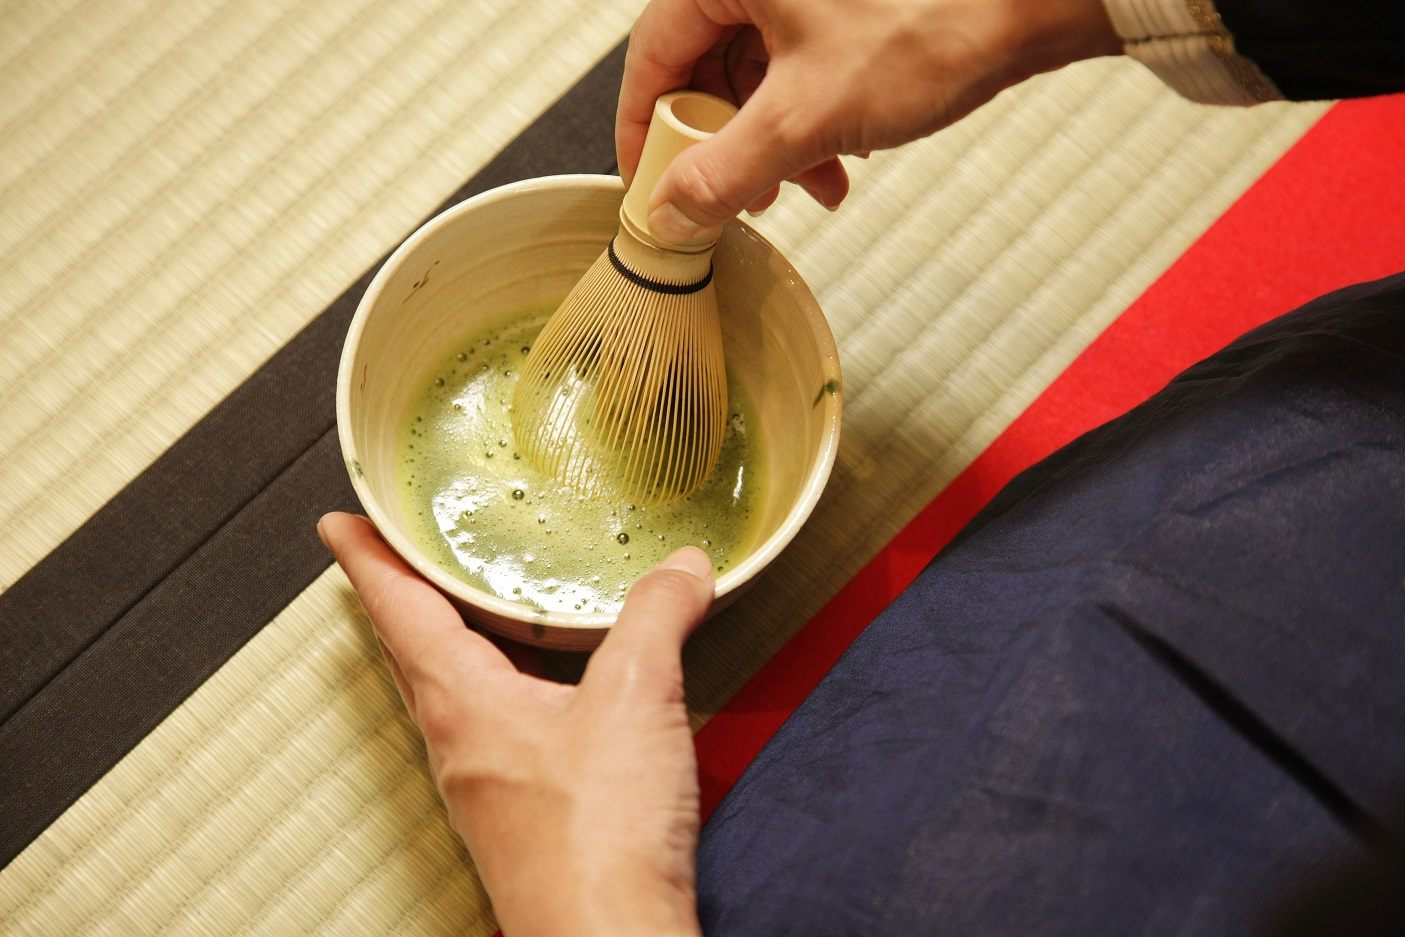 When you whip up the matcha yourself, the deep aroma of the tea will entice you to savor its exceptional flavor!